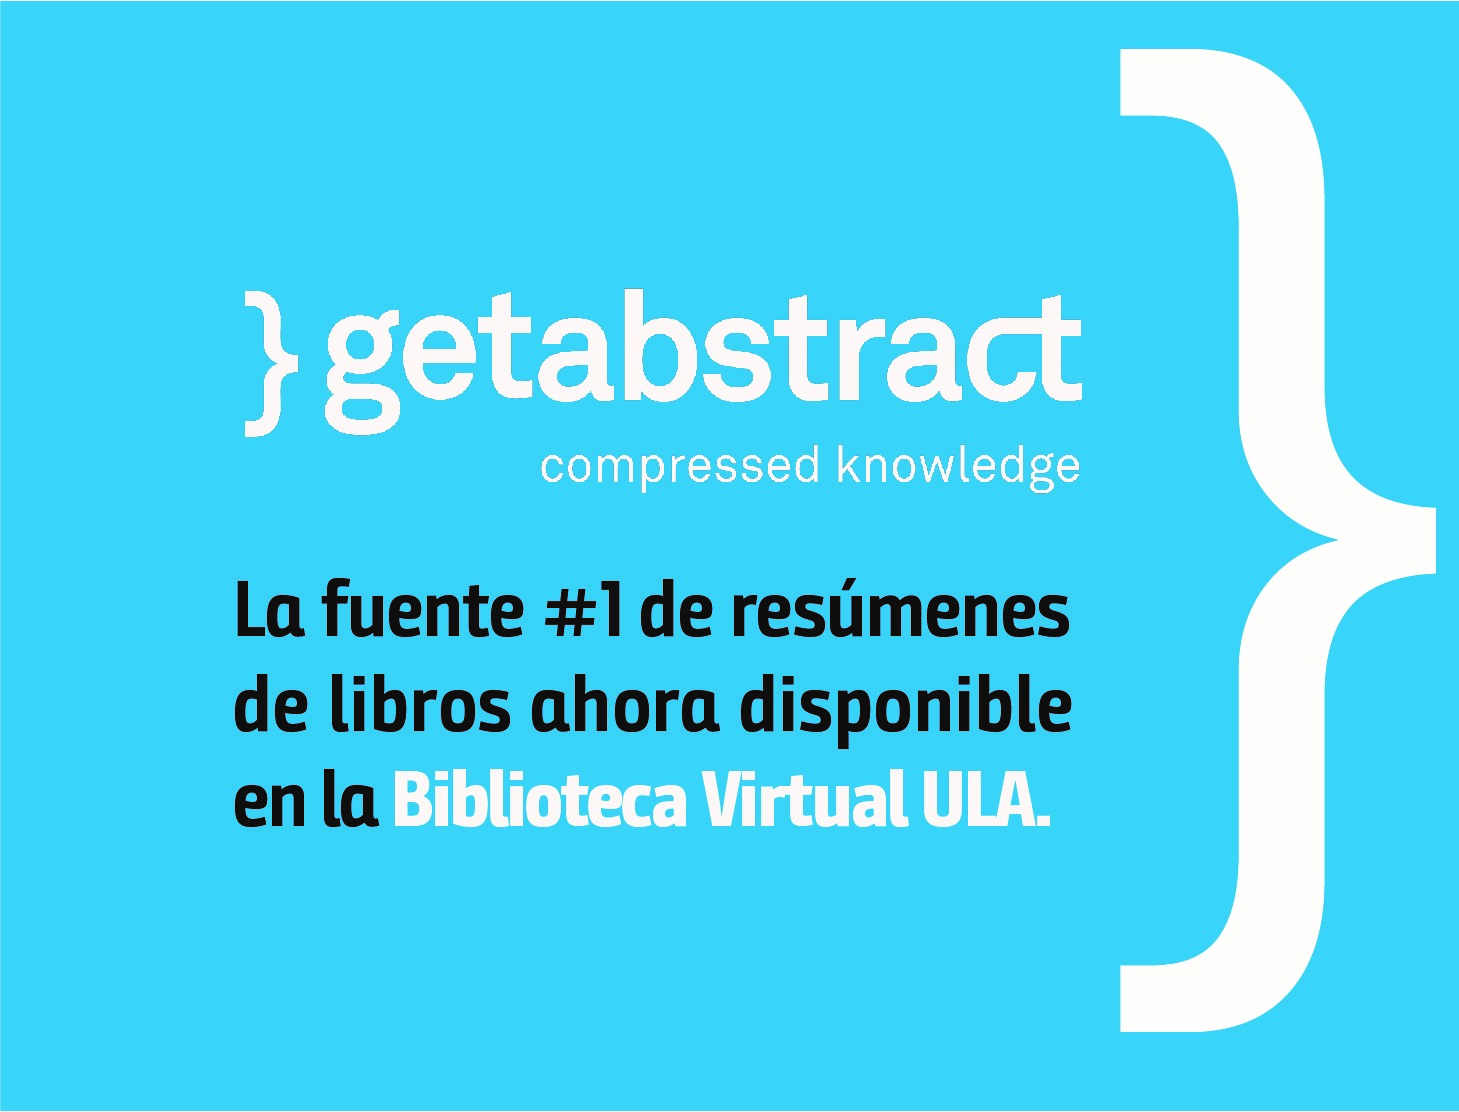 getAbstract ahora disponible en la Biblioteca Virtual ULA